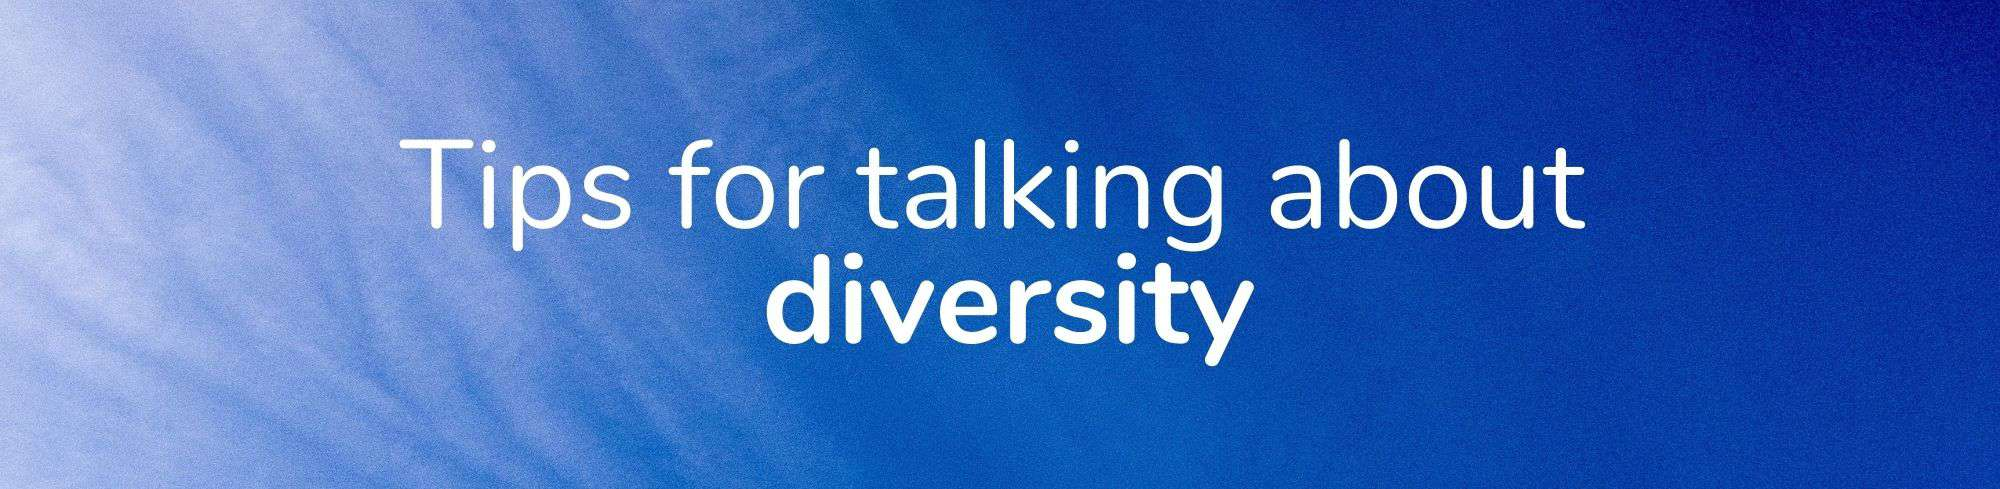 Tips for talking about diversity